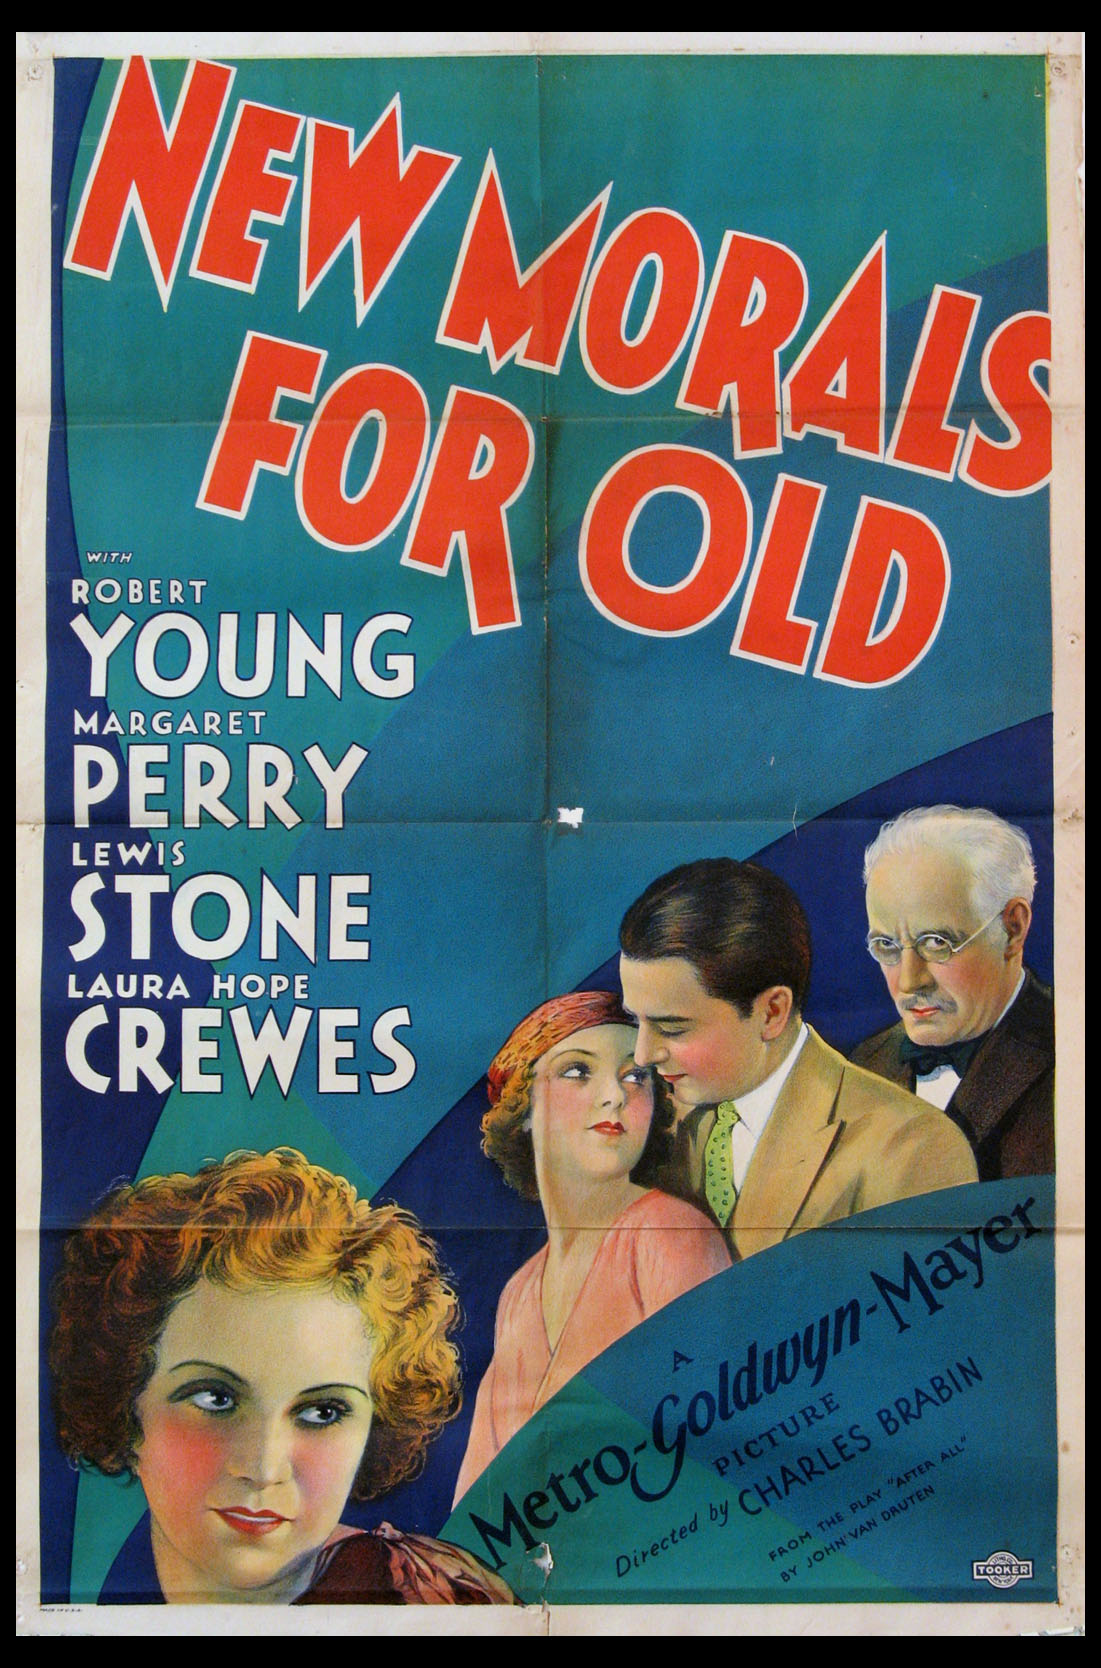 NEW MORALS FOR OLD @ FilmPosters.com